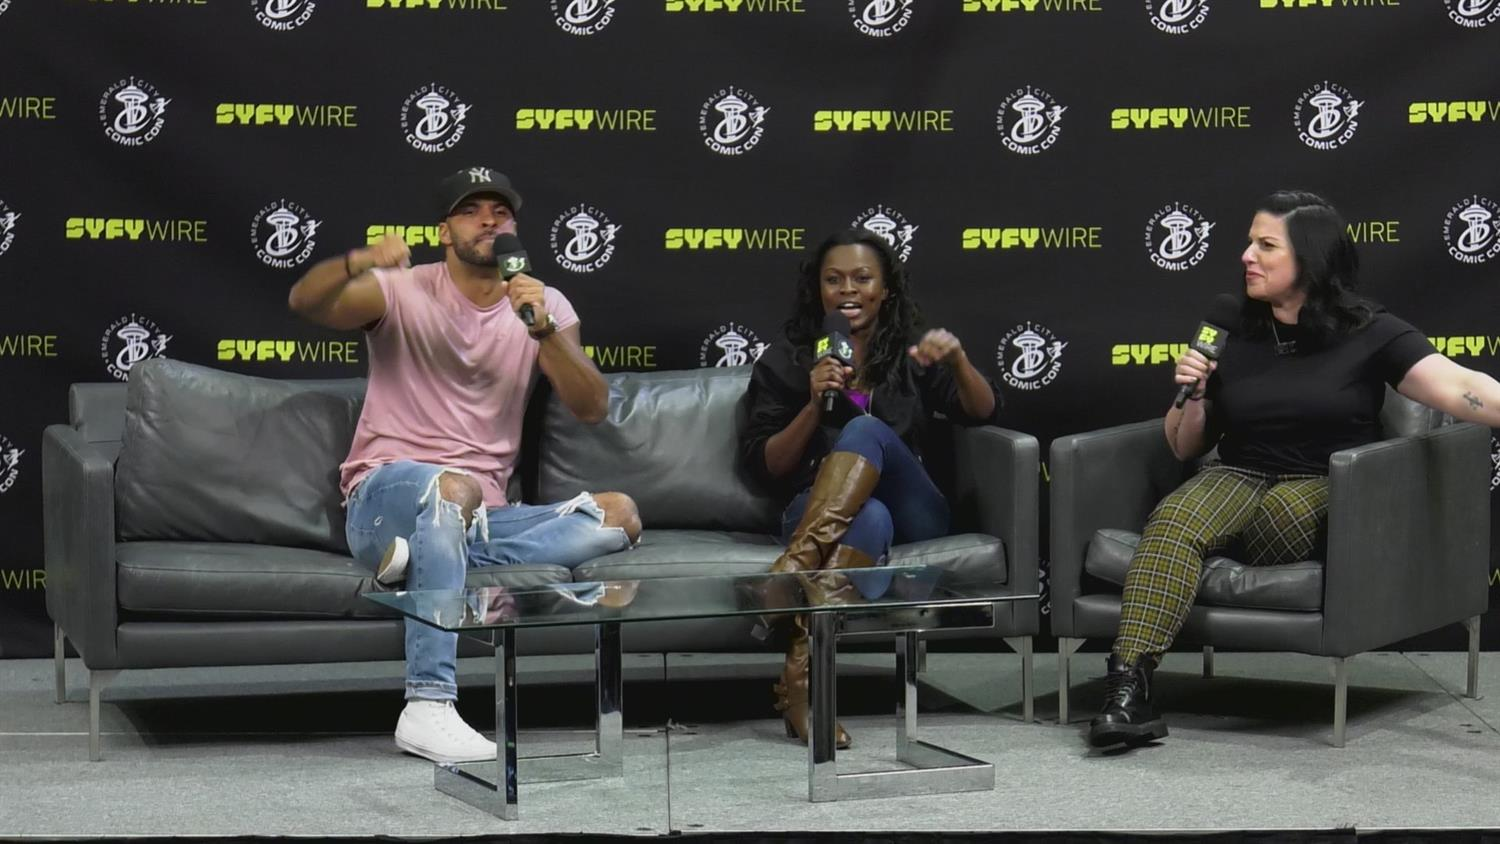 American Gods' Ricky Whittle & Yetide Badaki Tease Season 2 (Emerald City Comic Con)